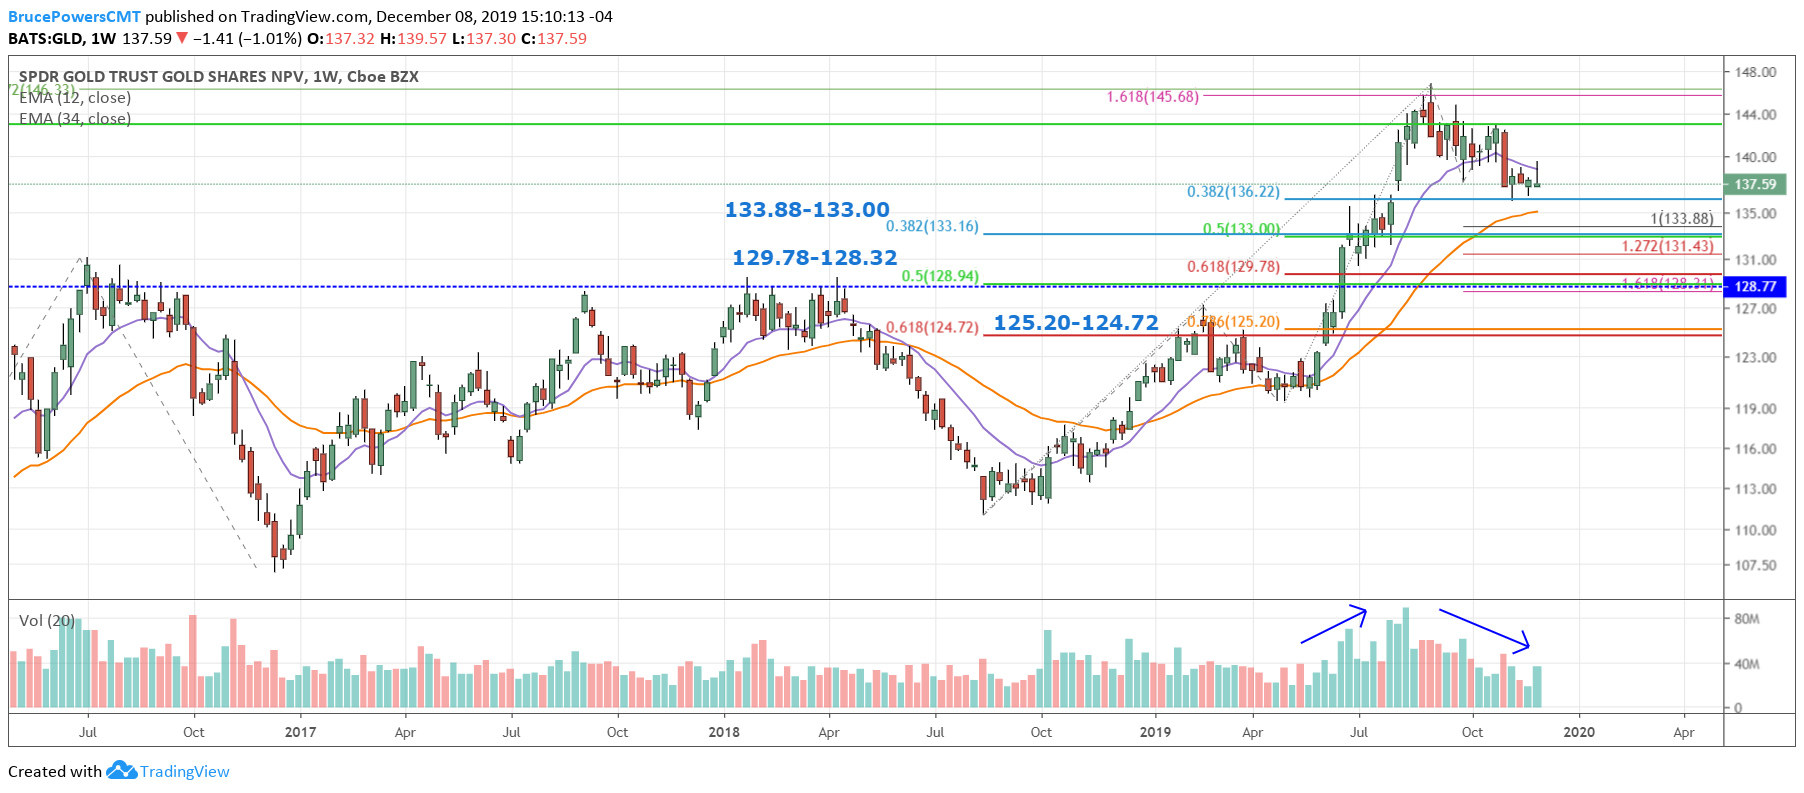 GLD Weekly Chart - near-term